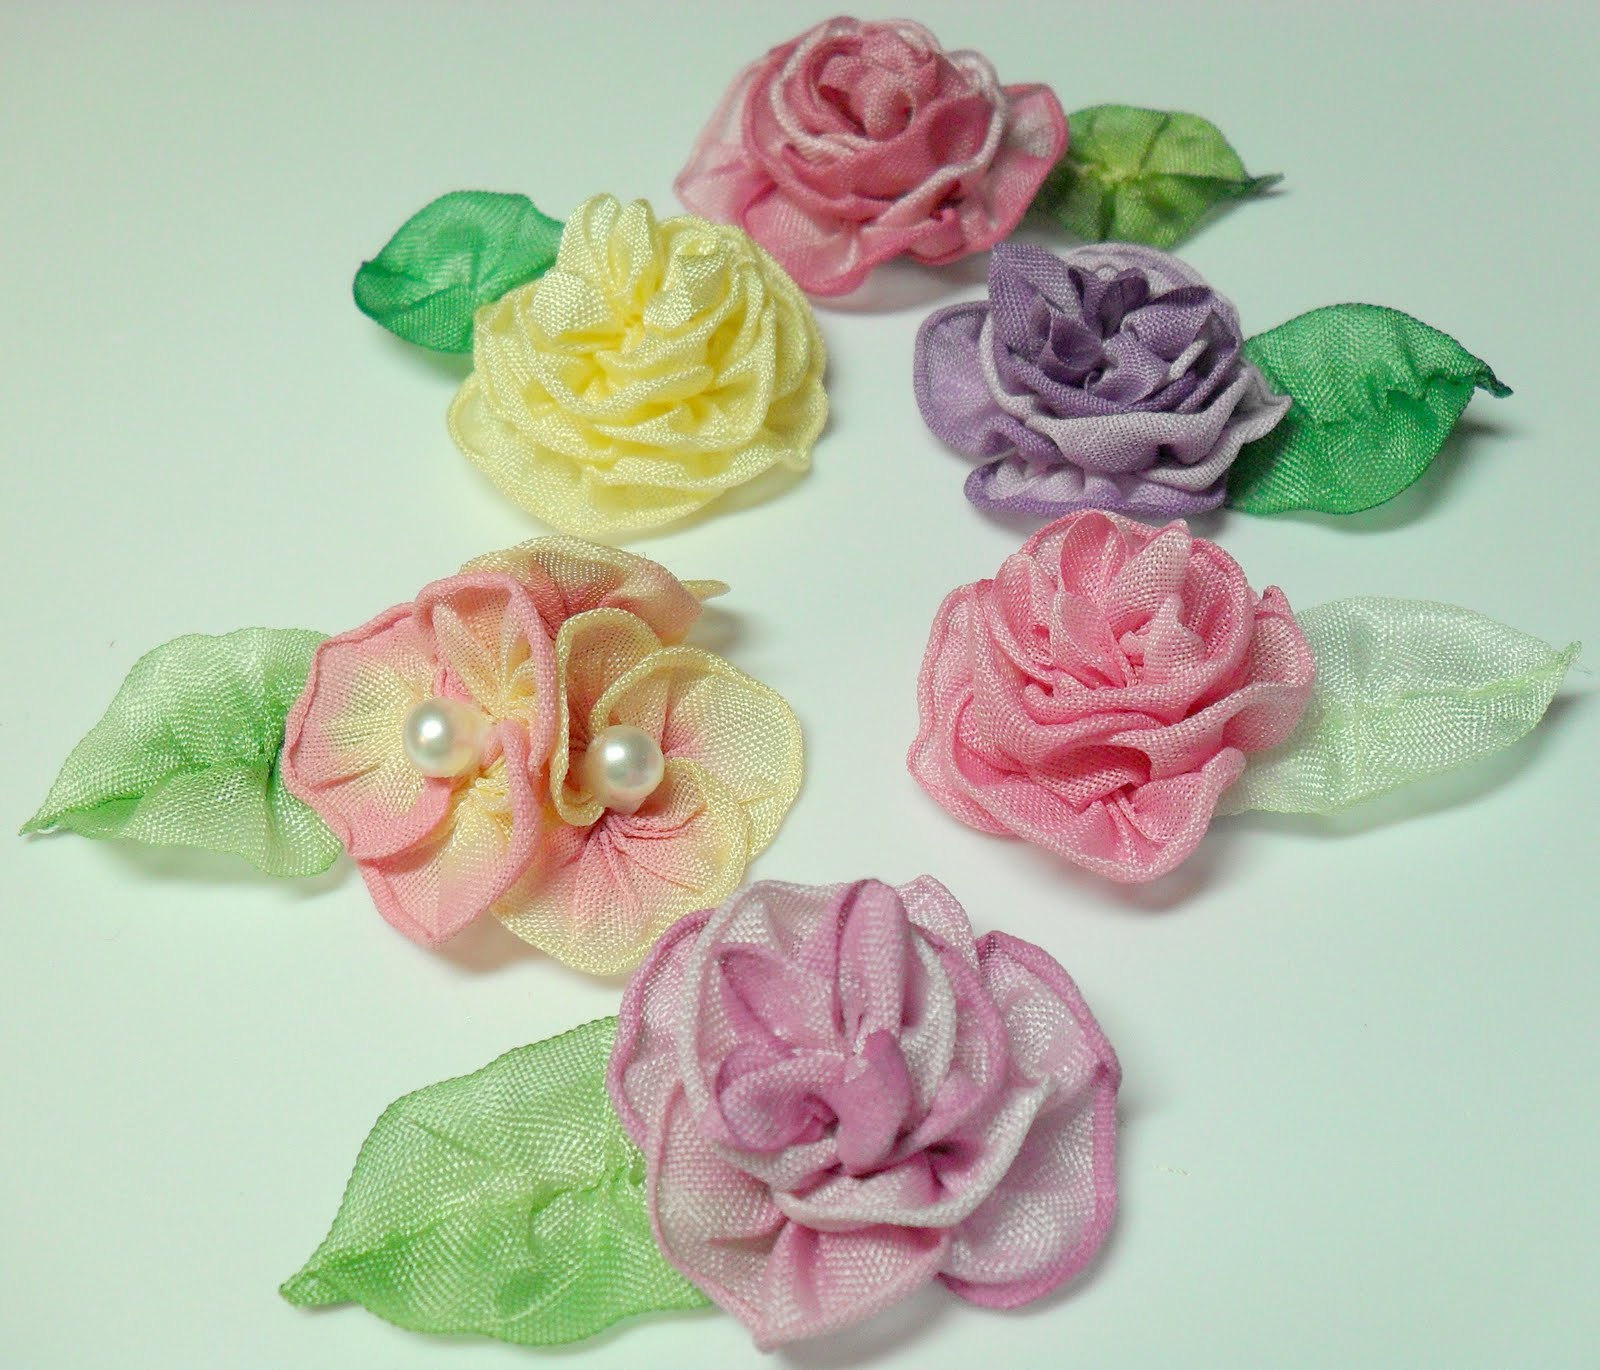 Ribbon Work Designs http://lambsandivydesigns.blogspot.com/2011/07/ribbonwork-ribbon-flowers-for-mary.html